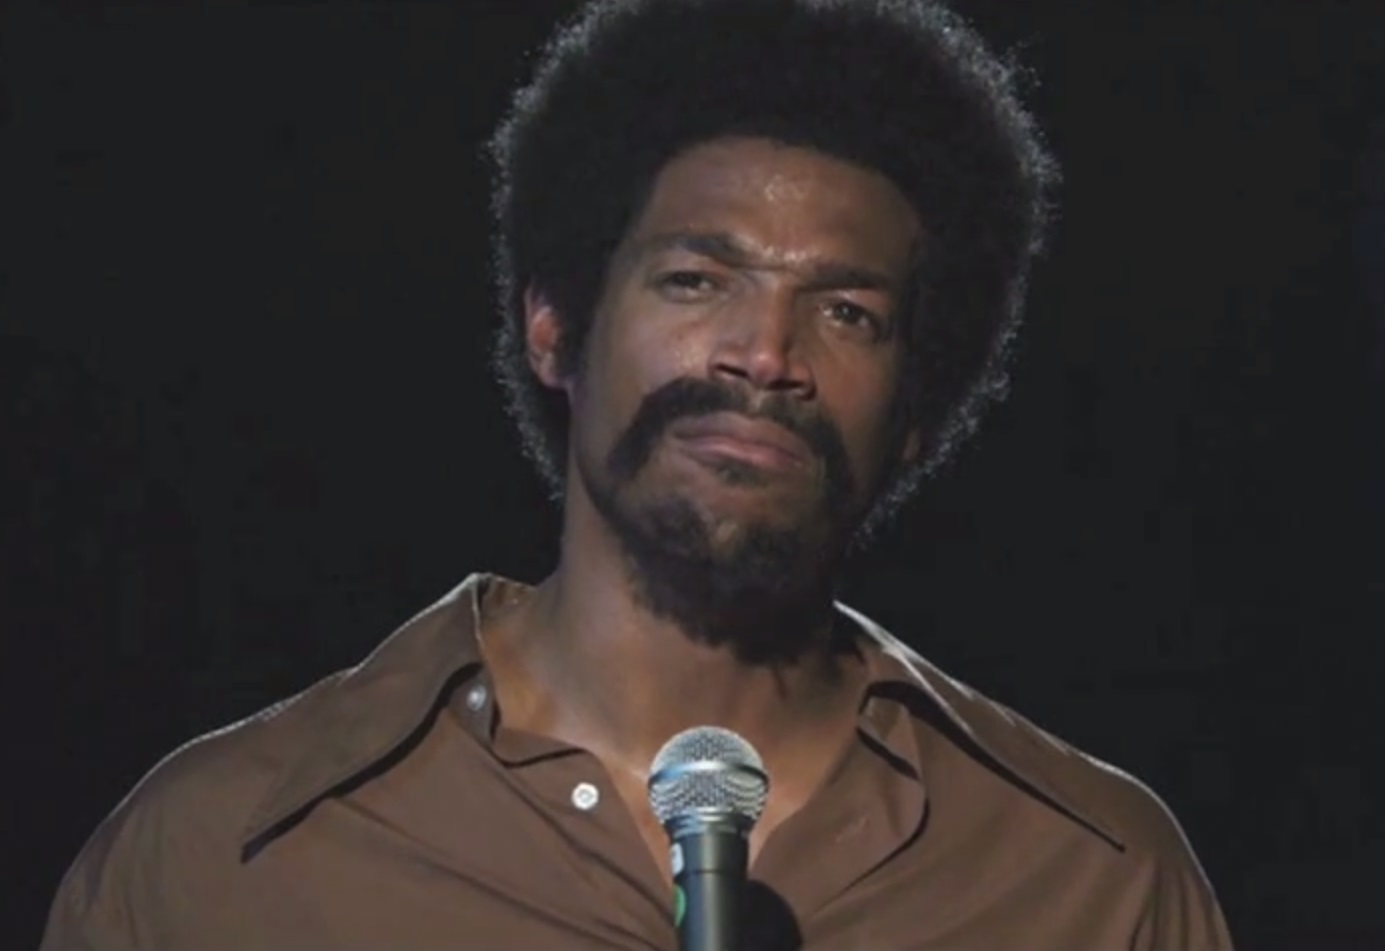 Marlon Wayans as Richard Pryor - Still from audition footage